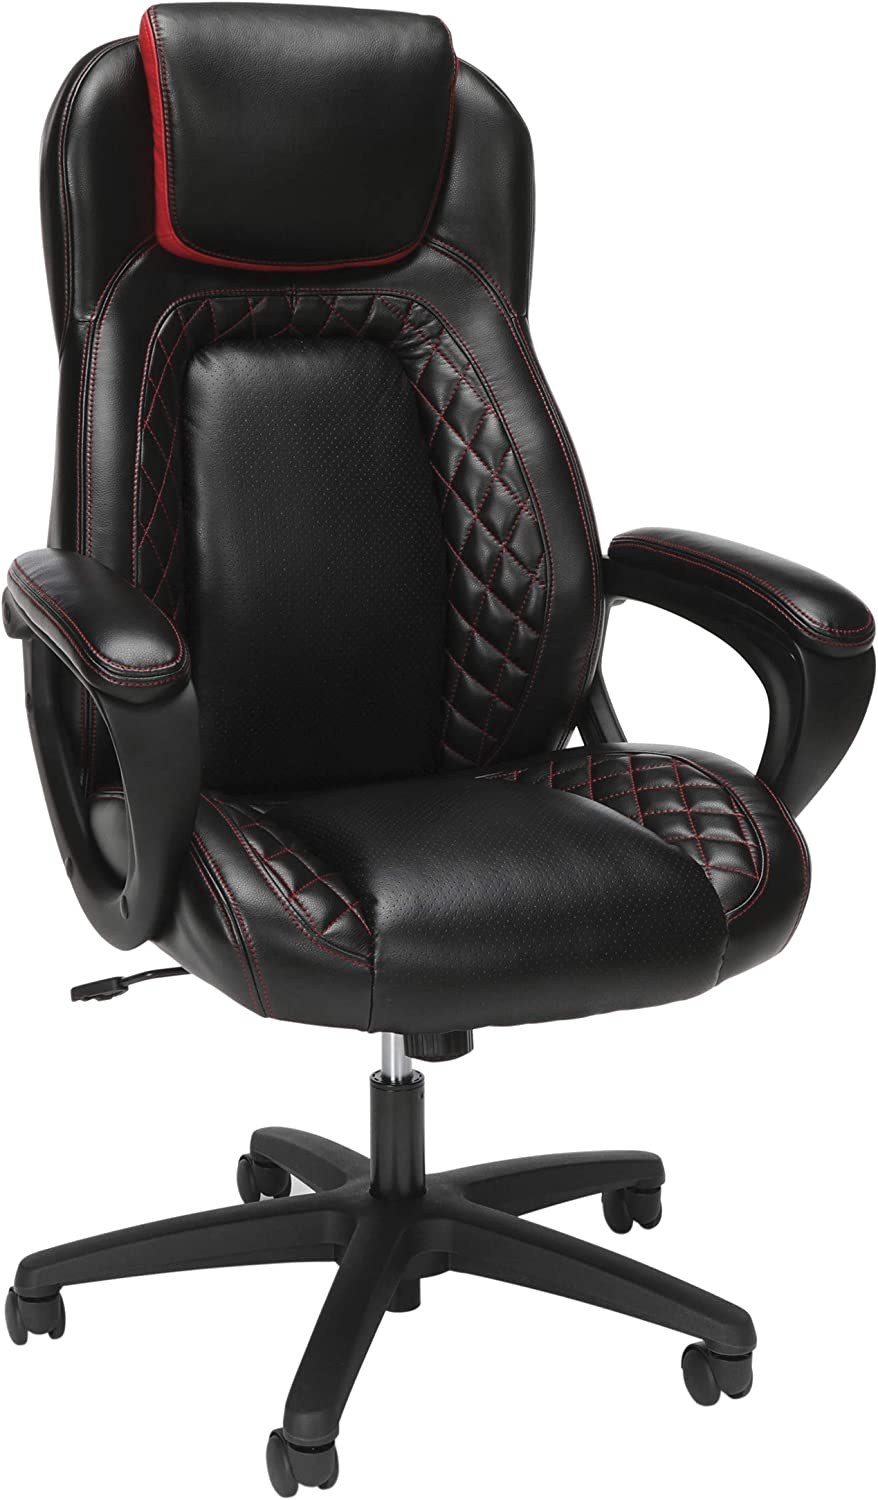 OFM Essentials Collection Racing Style SofThread Leather High Back Office Chair, in Red: Furniture & Decor